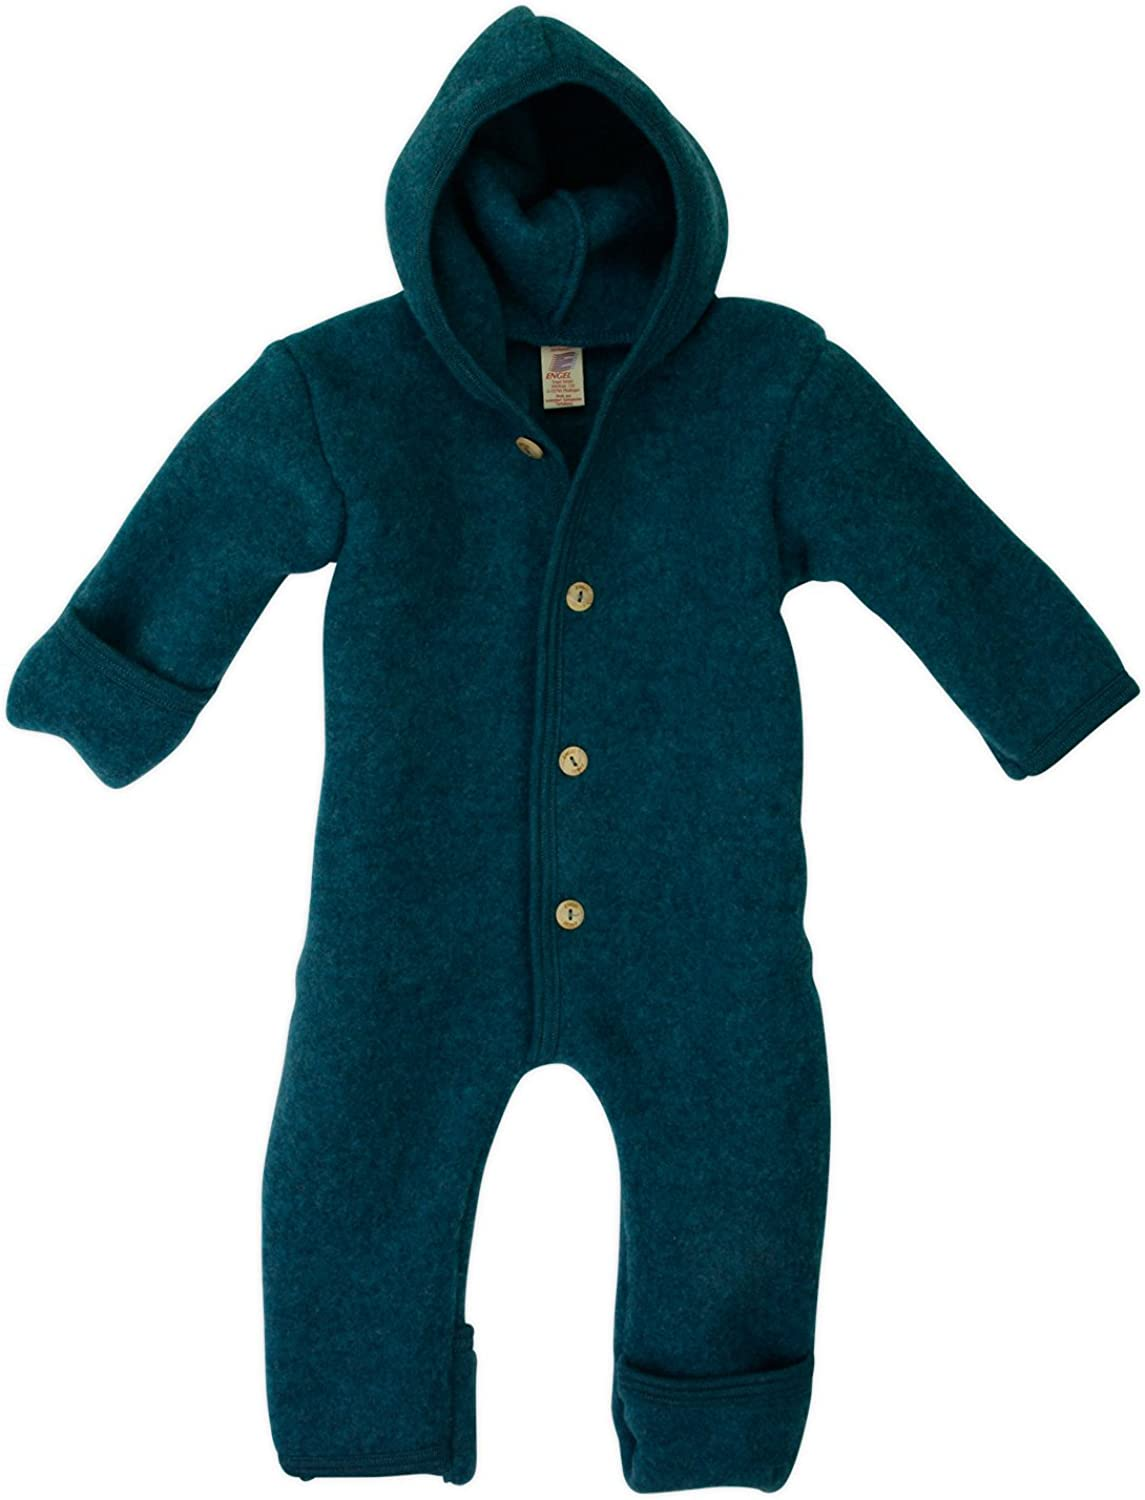 Baby Hooded Overall With Wooden Buttons Engel 100/% Organic Merino Wool